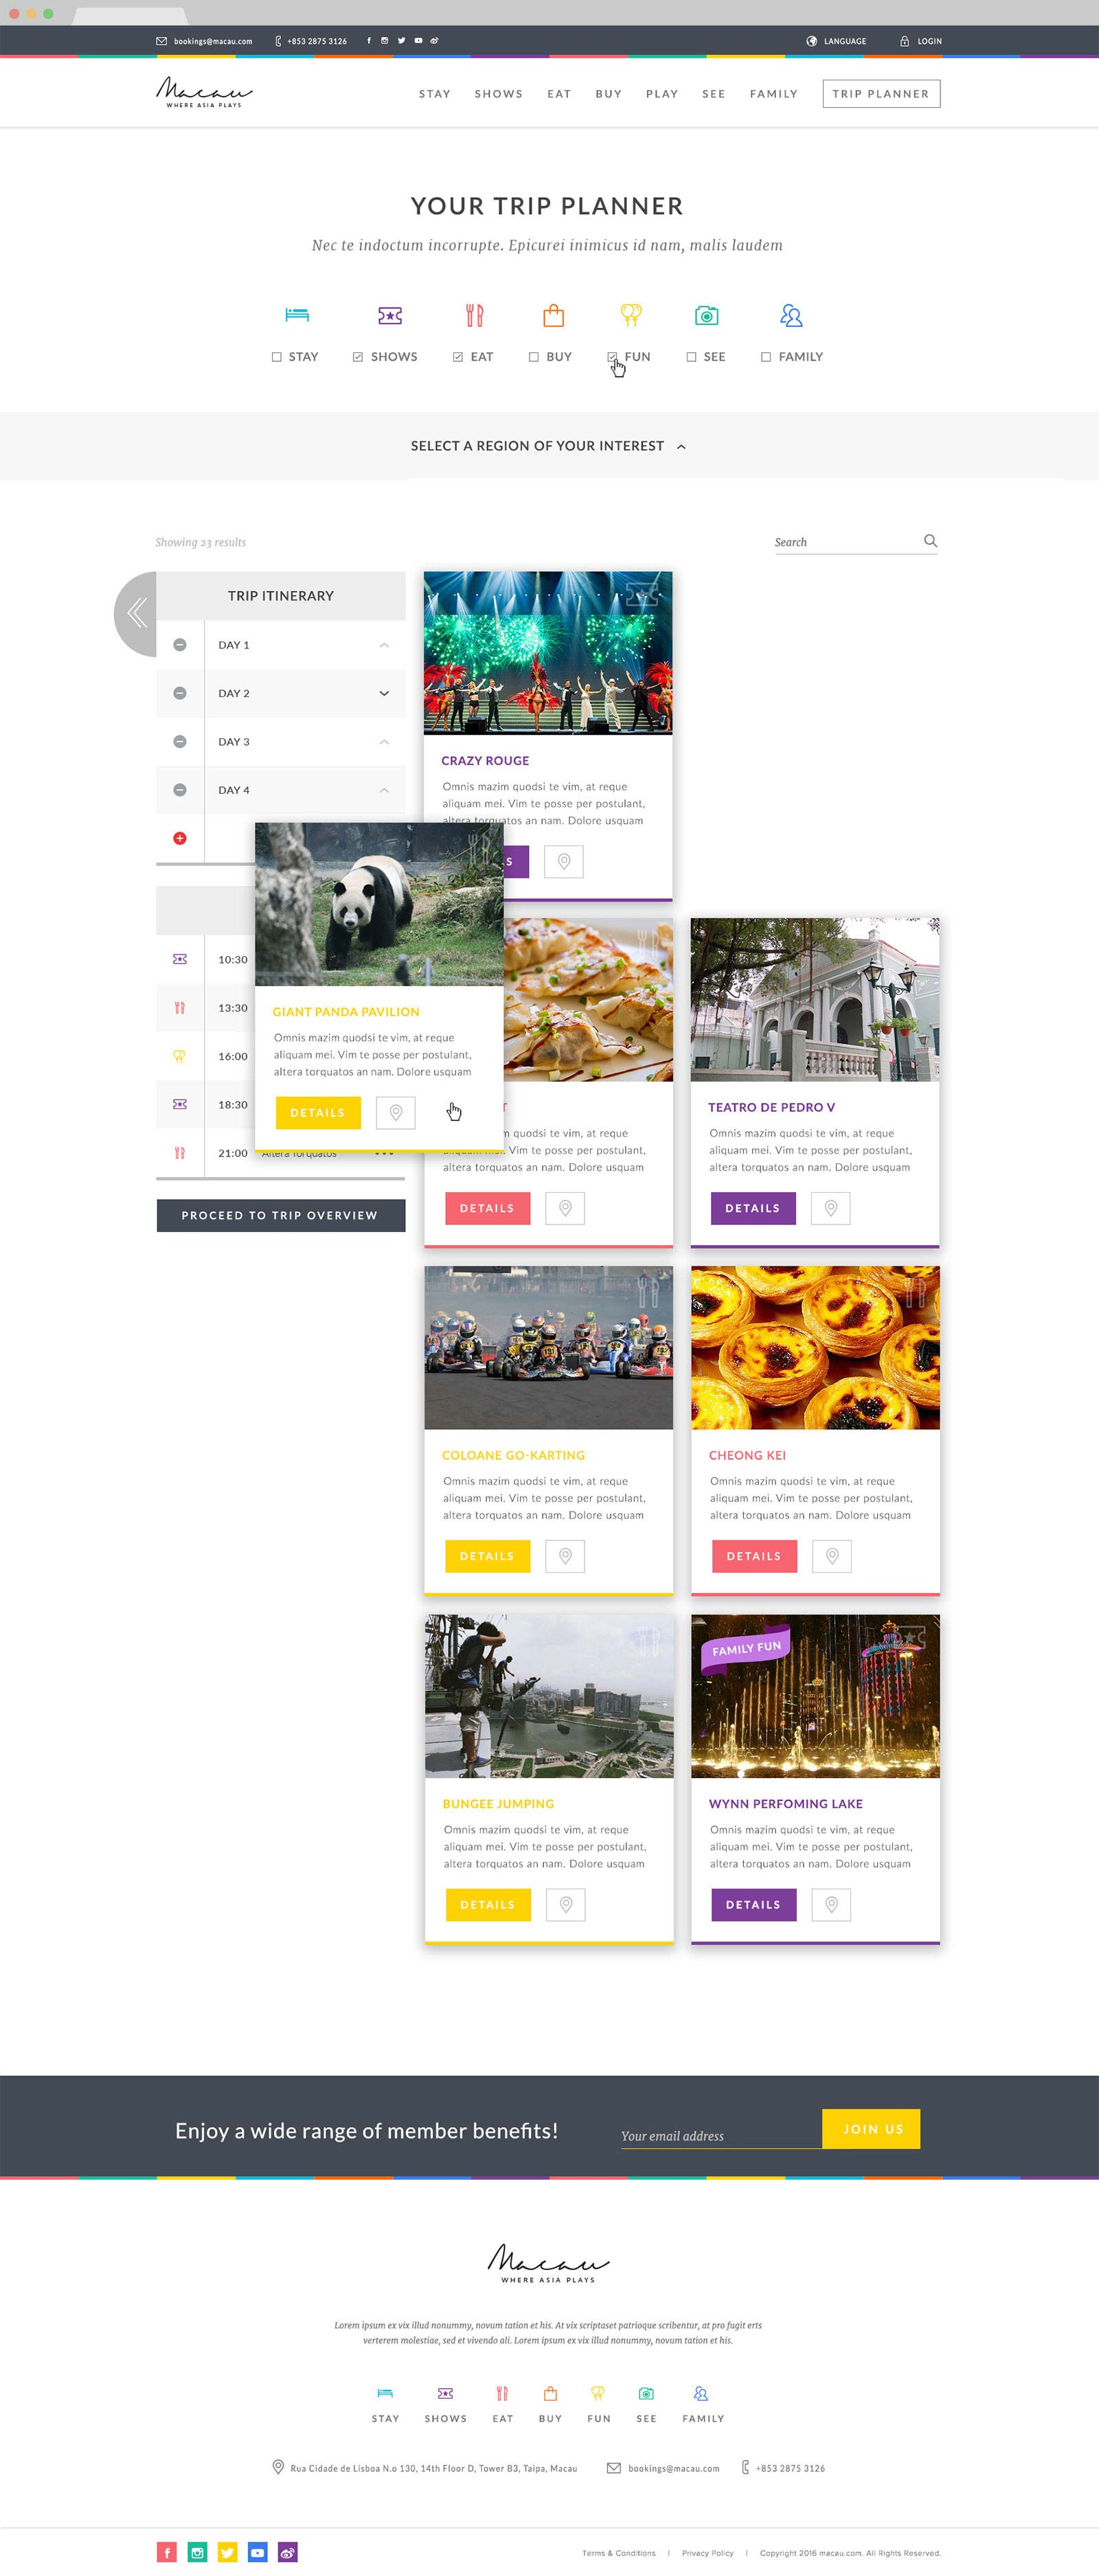 web design hk macau 03